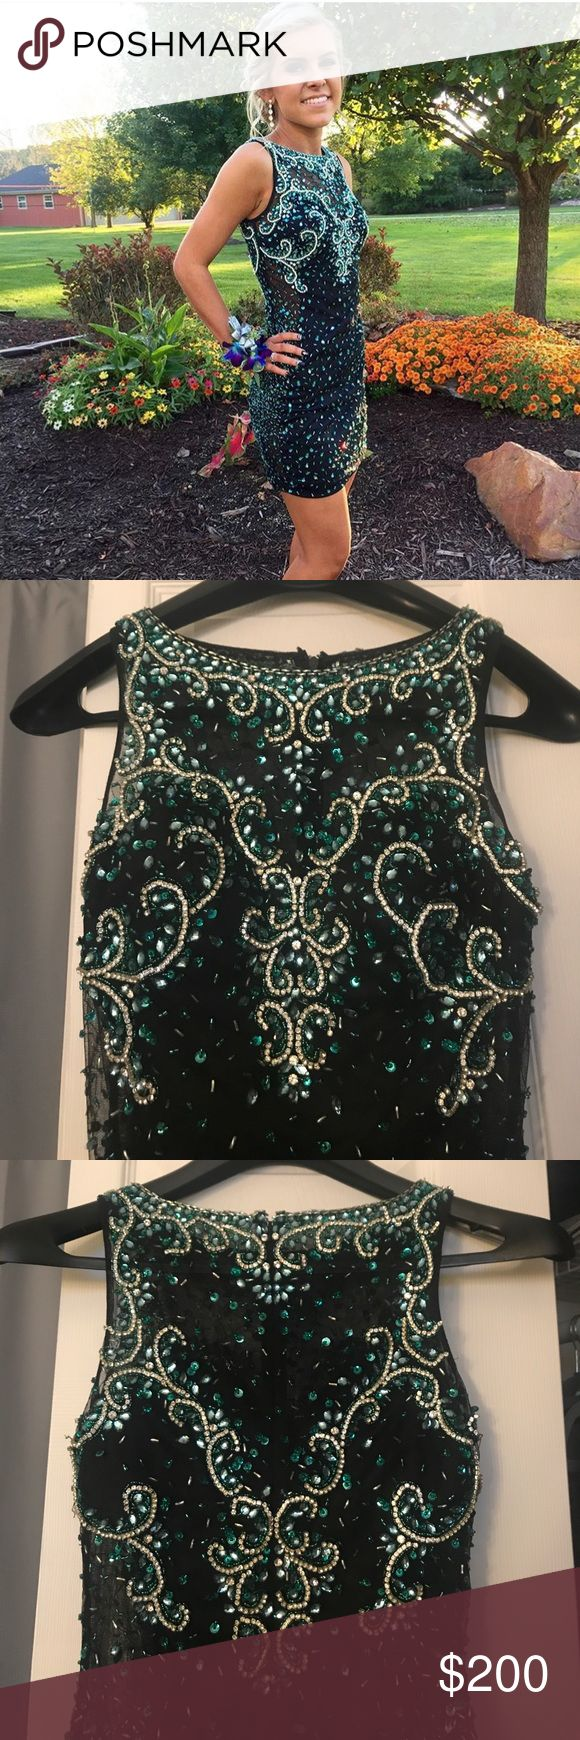 Karishma creations adiago party dress Black karishma party dress with silver and turquoise beading throughout the dress, small spot of beads missing price is adjusted considering that. Size 4 runs extremely small I am usually a 00/0 and because of heavy beading it is a very tight fit for a 4. Karishma Other